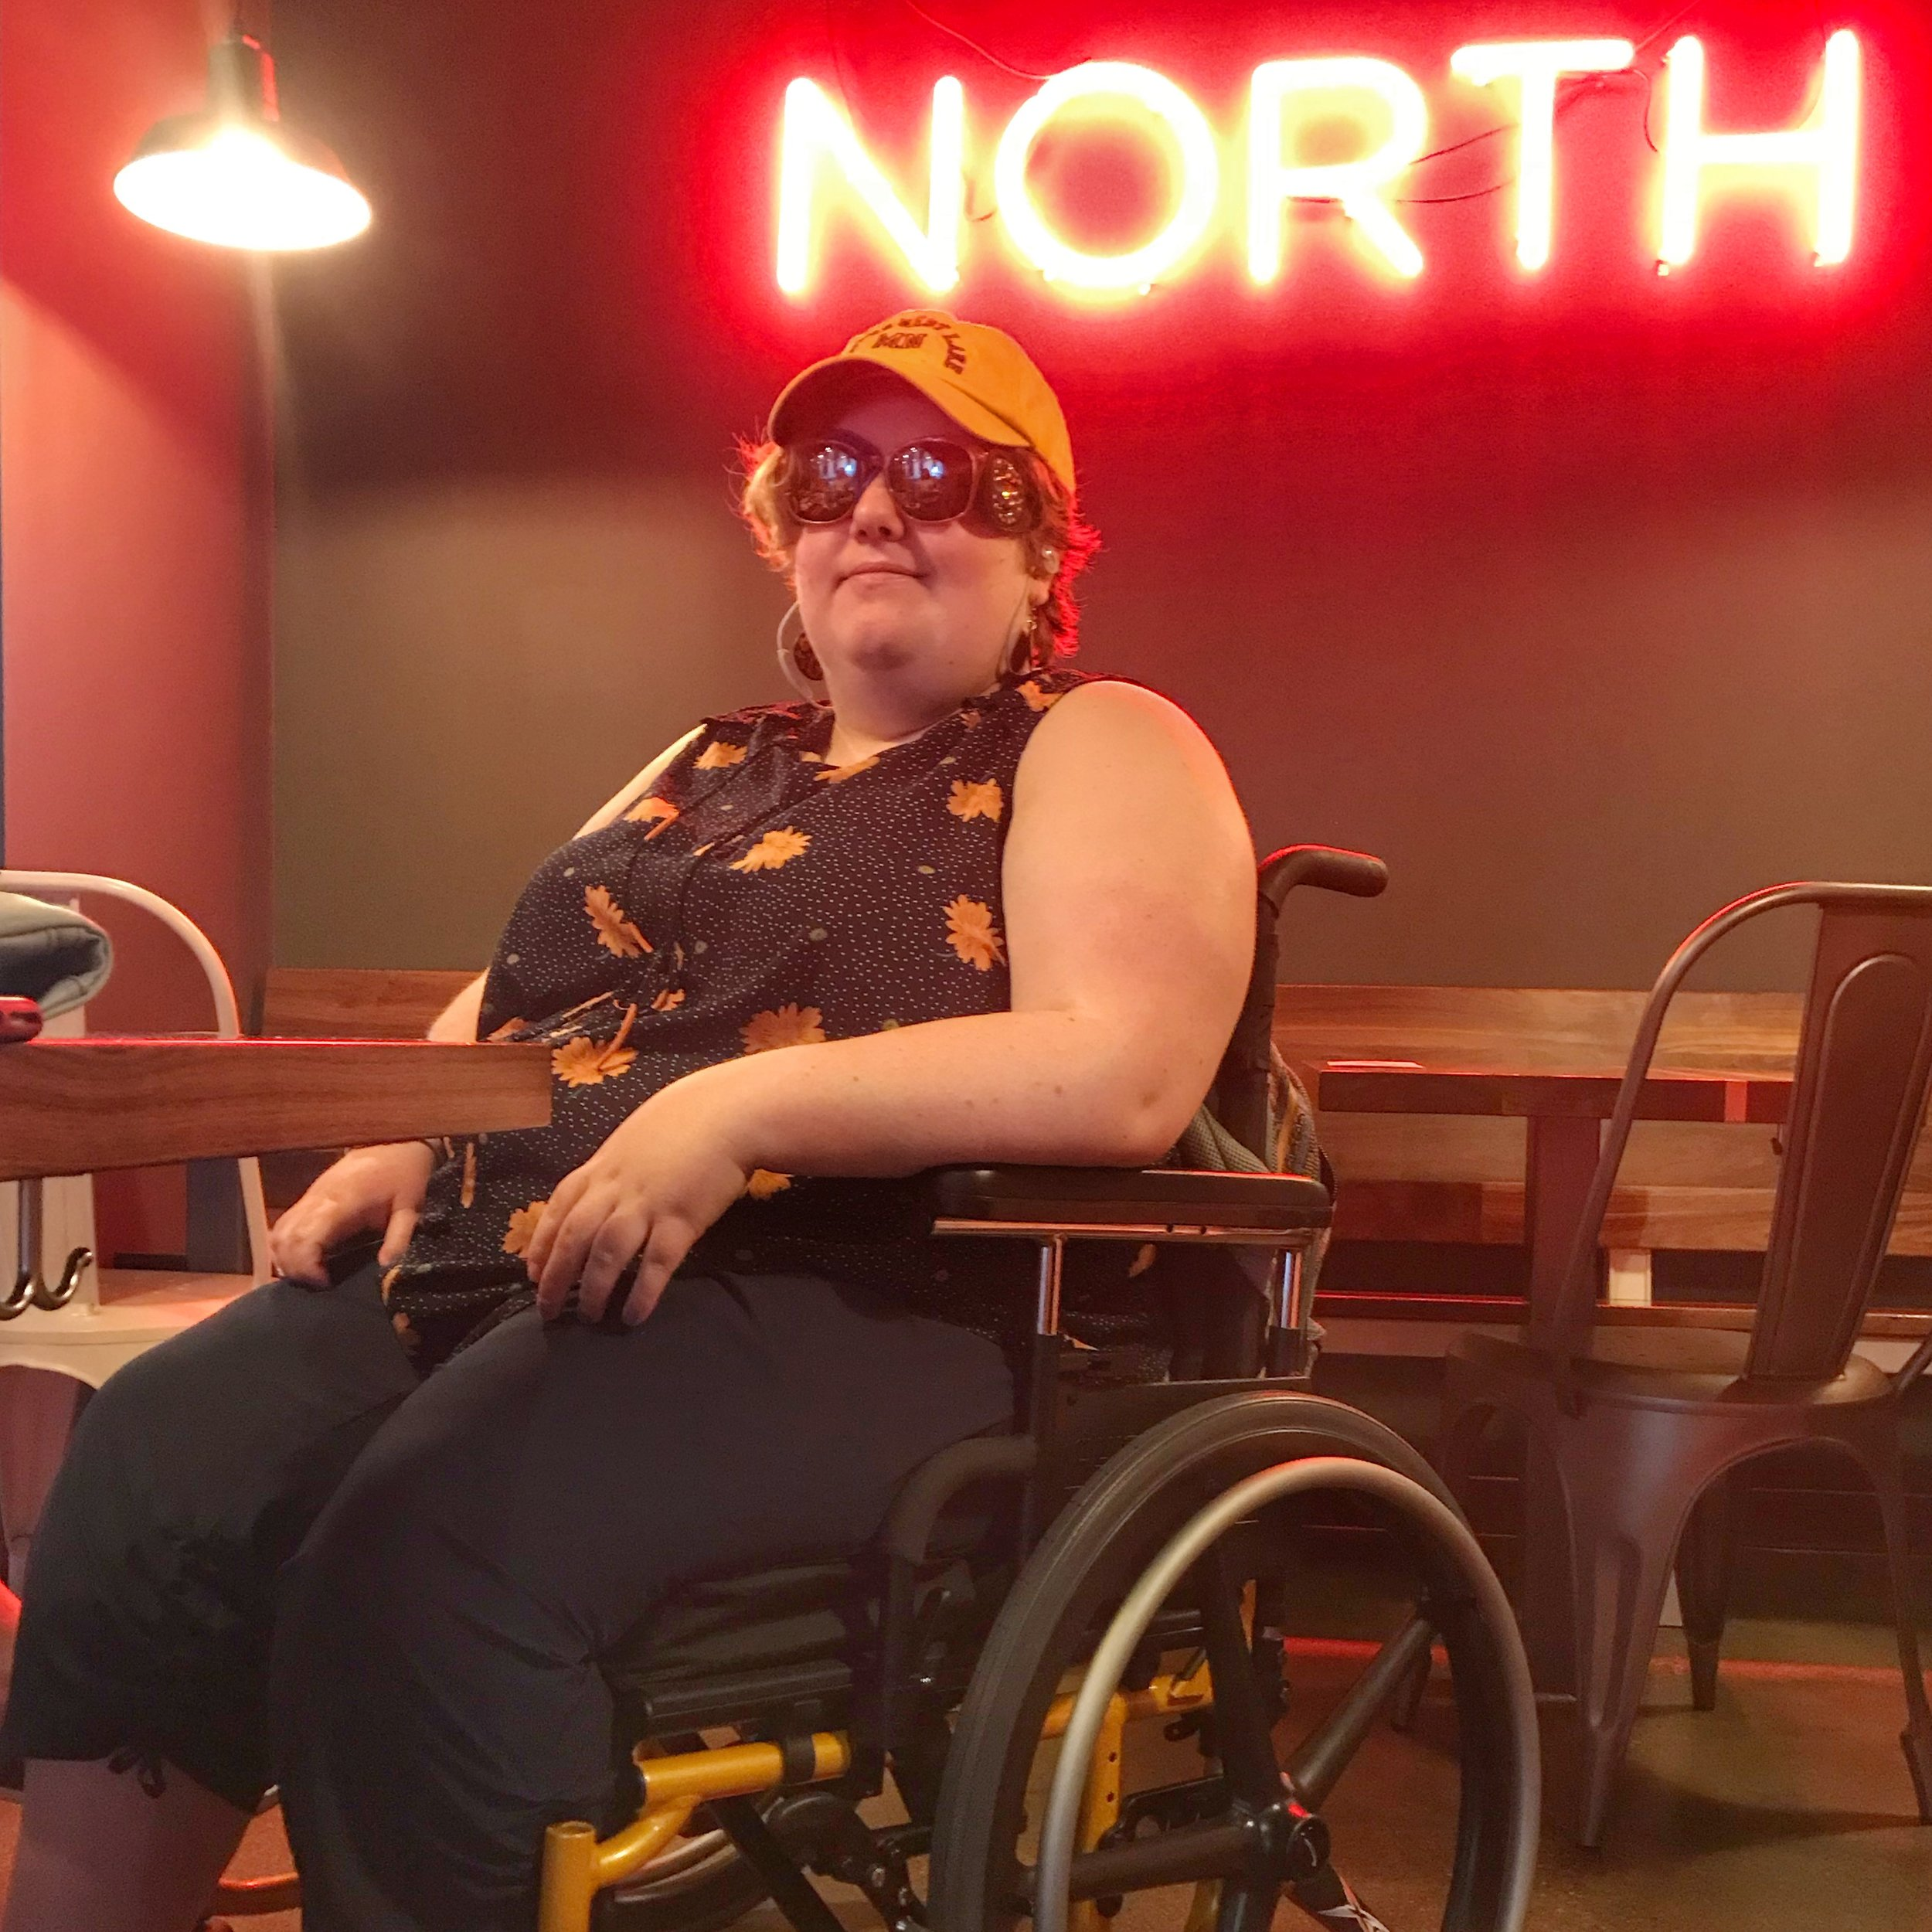 """Erin and her wheelchair """"Golden Hotwheels"""" at a brewery. The neon sign in the background reads: NORTH."""